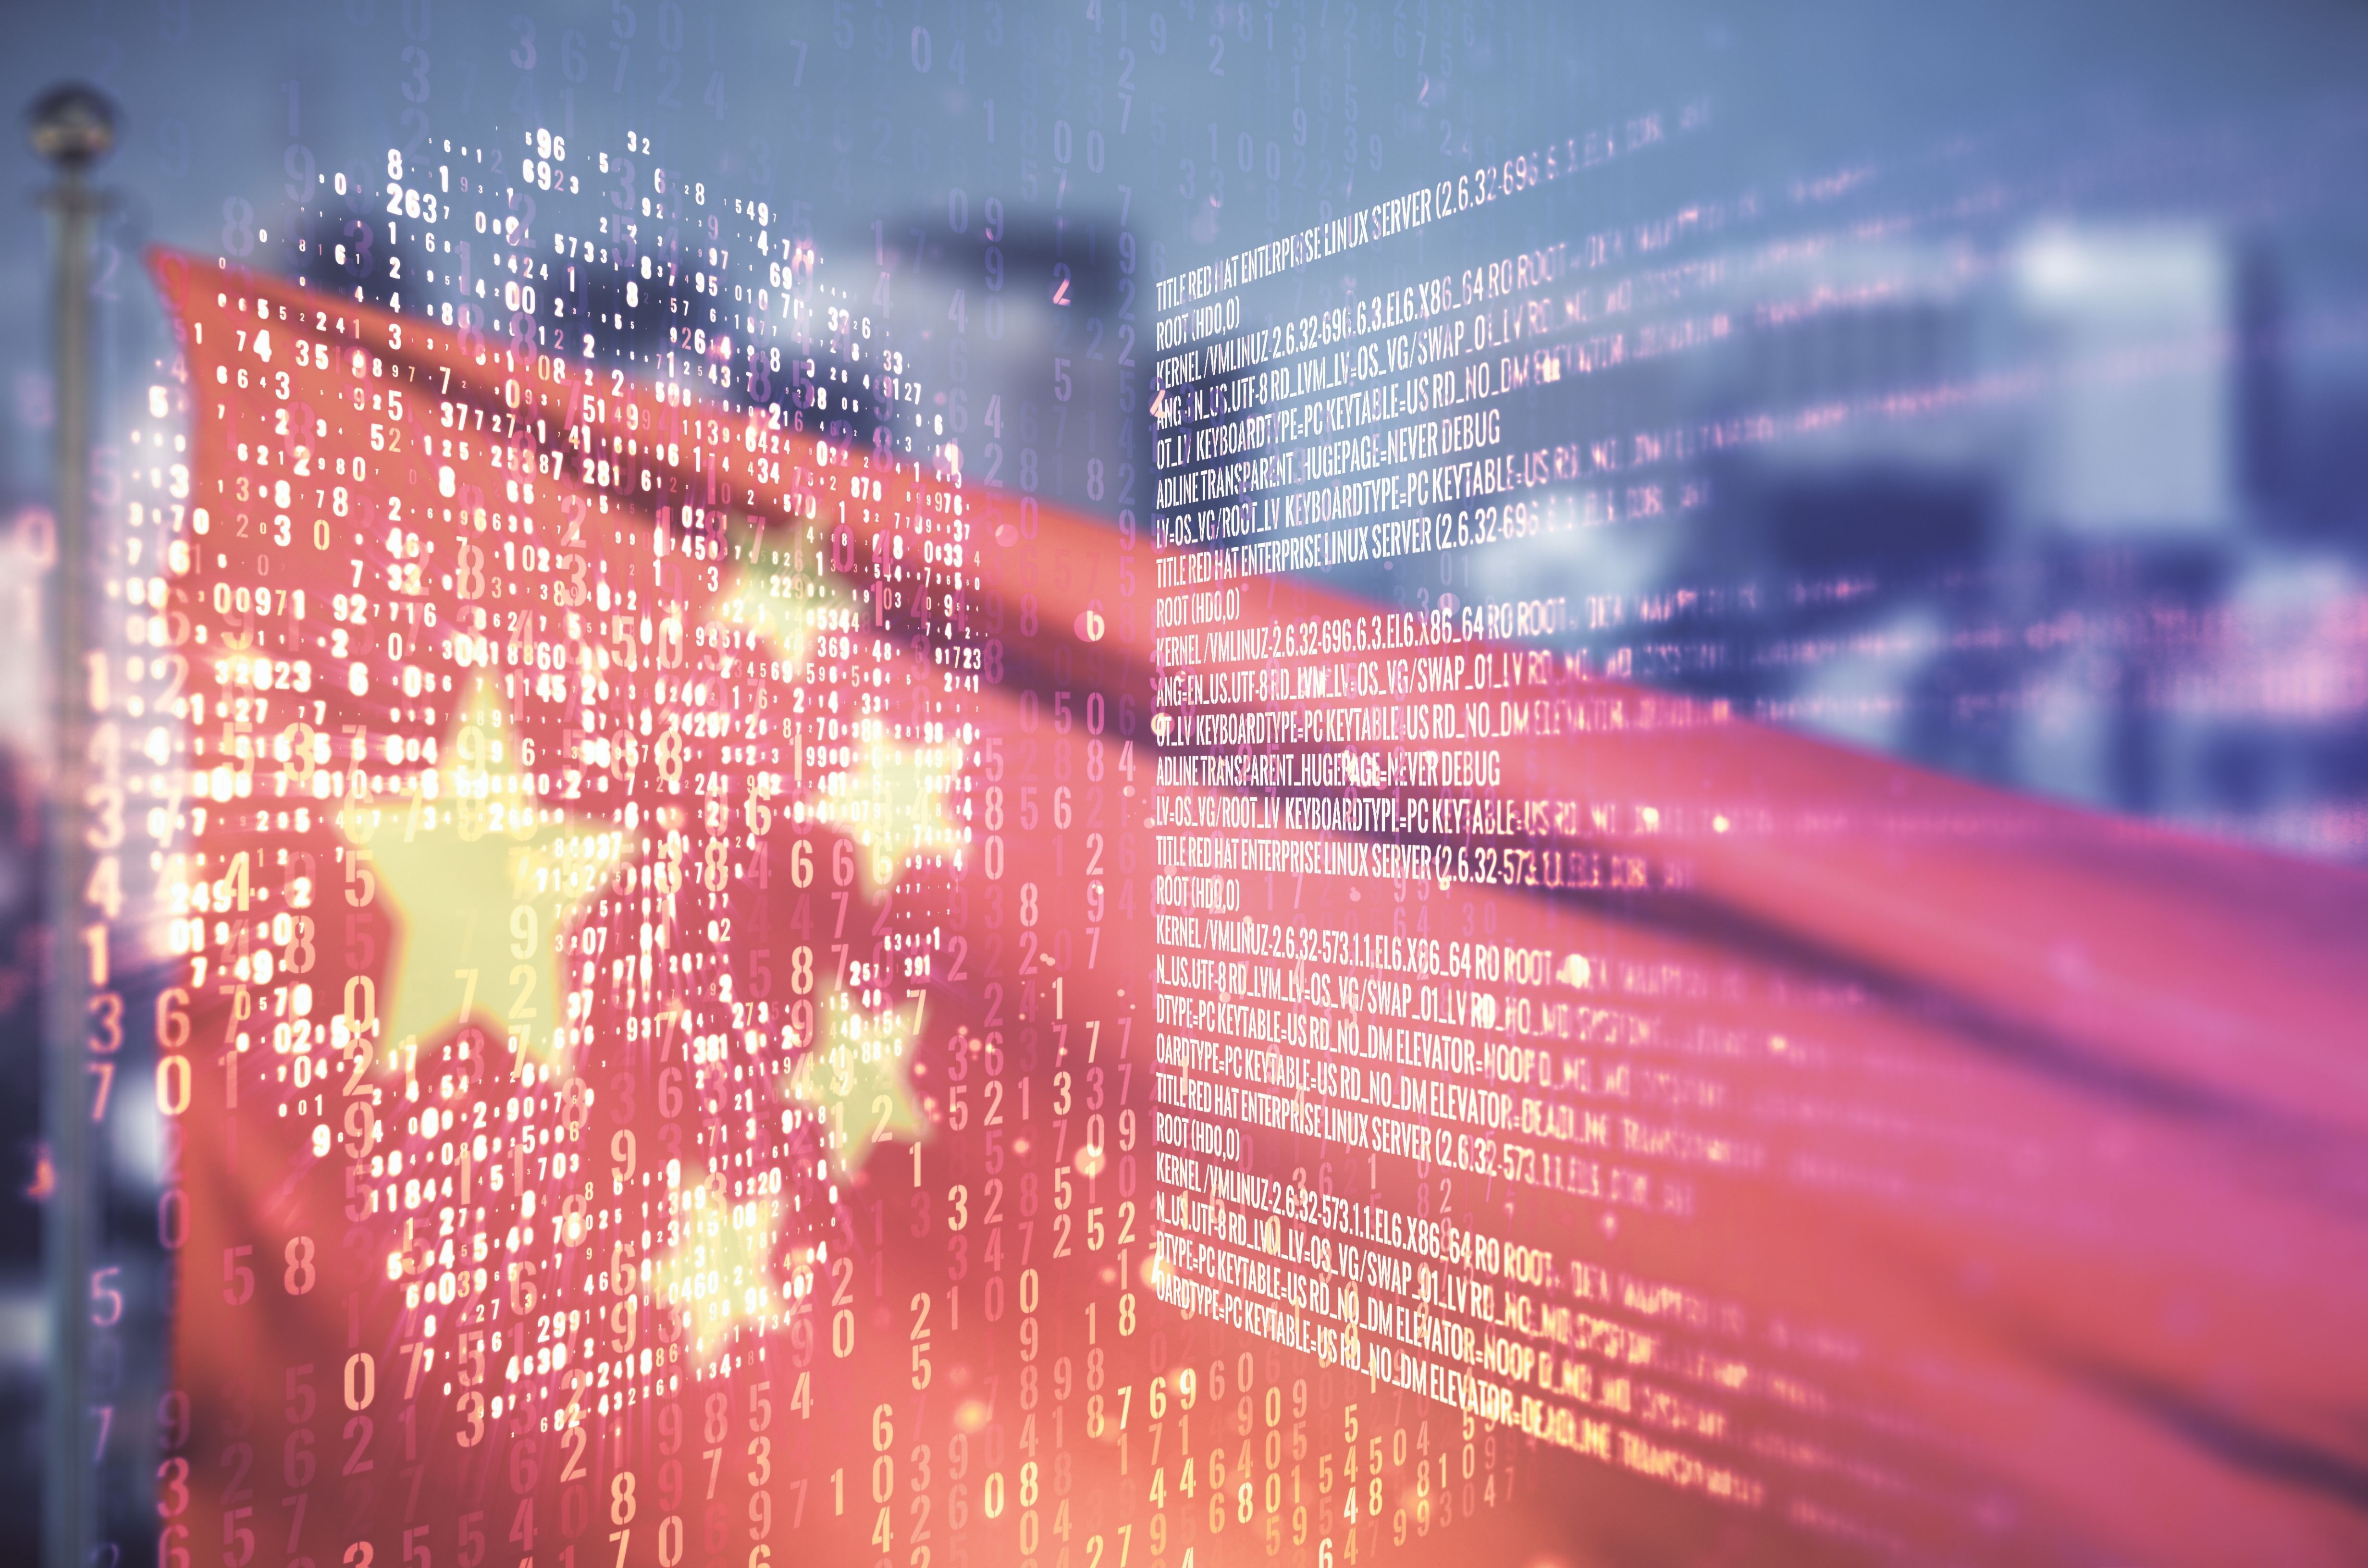 China's Cybersecurity Review